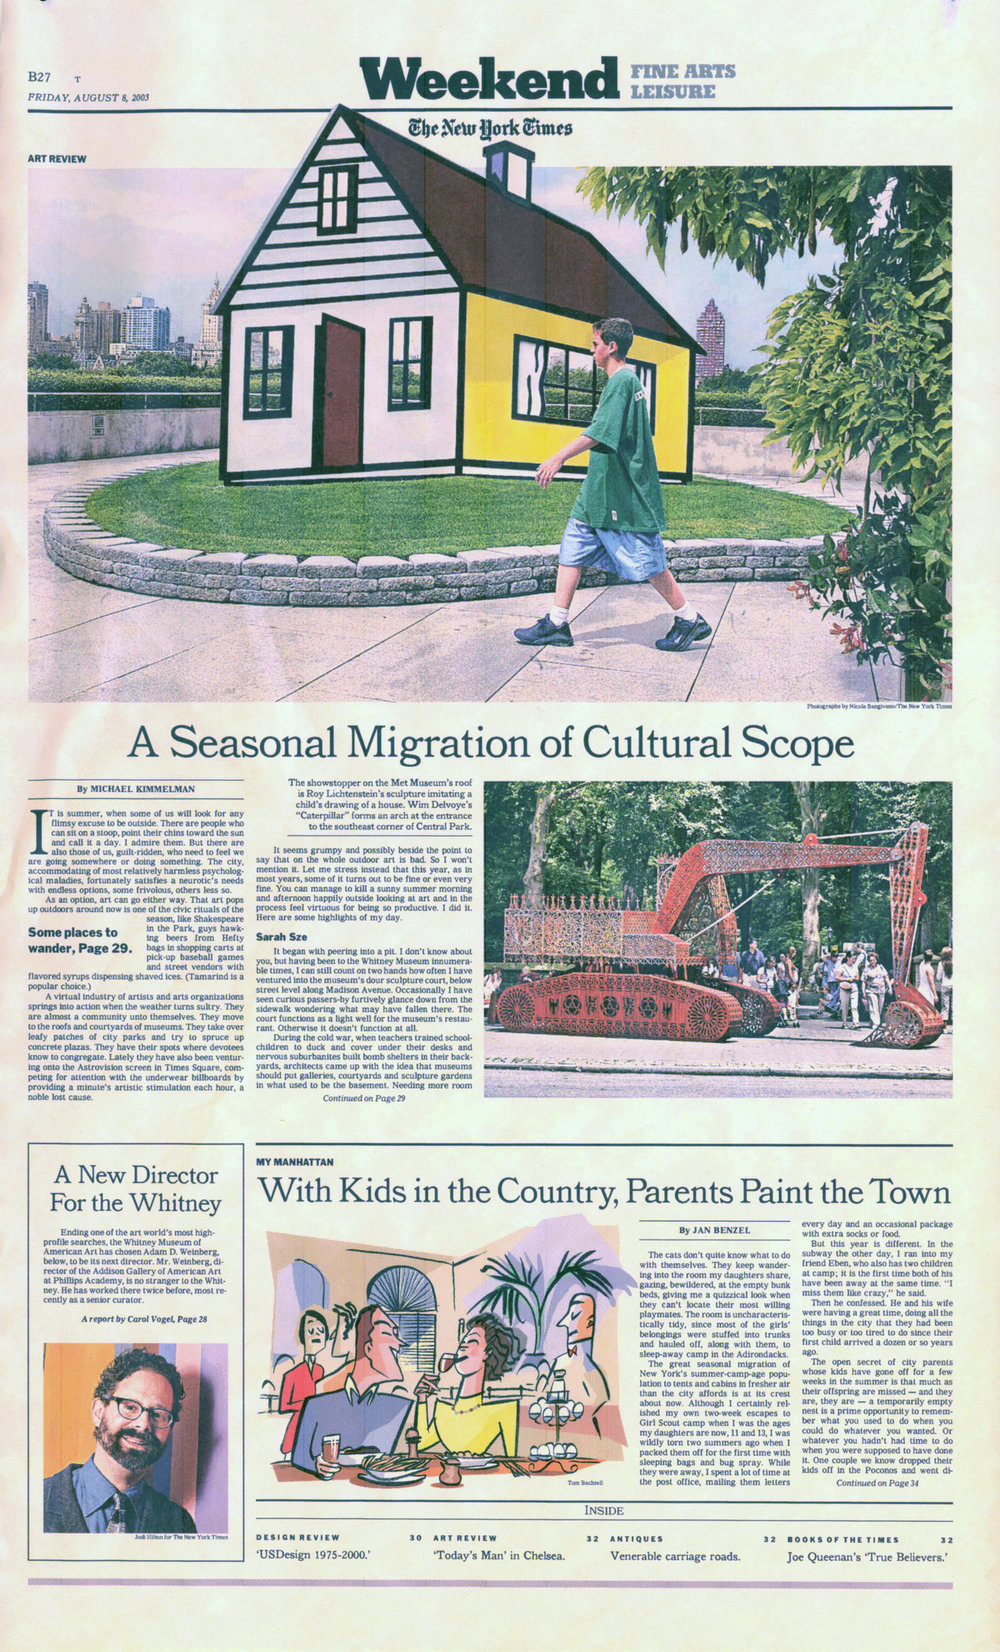 The New York Times weekend section. Illustration by Tom Bachtell